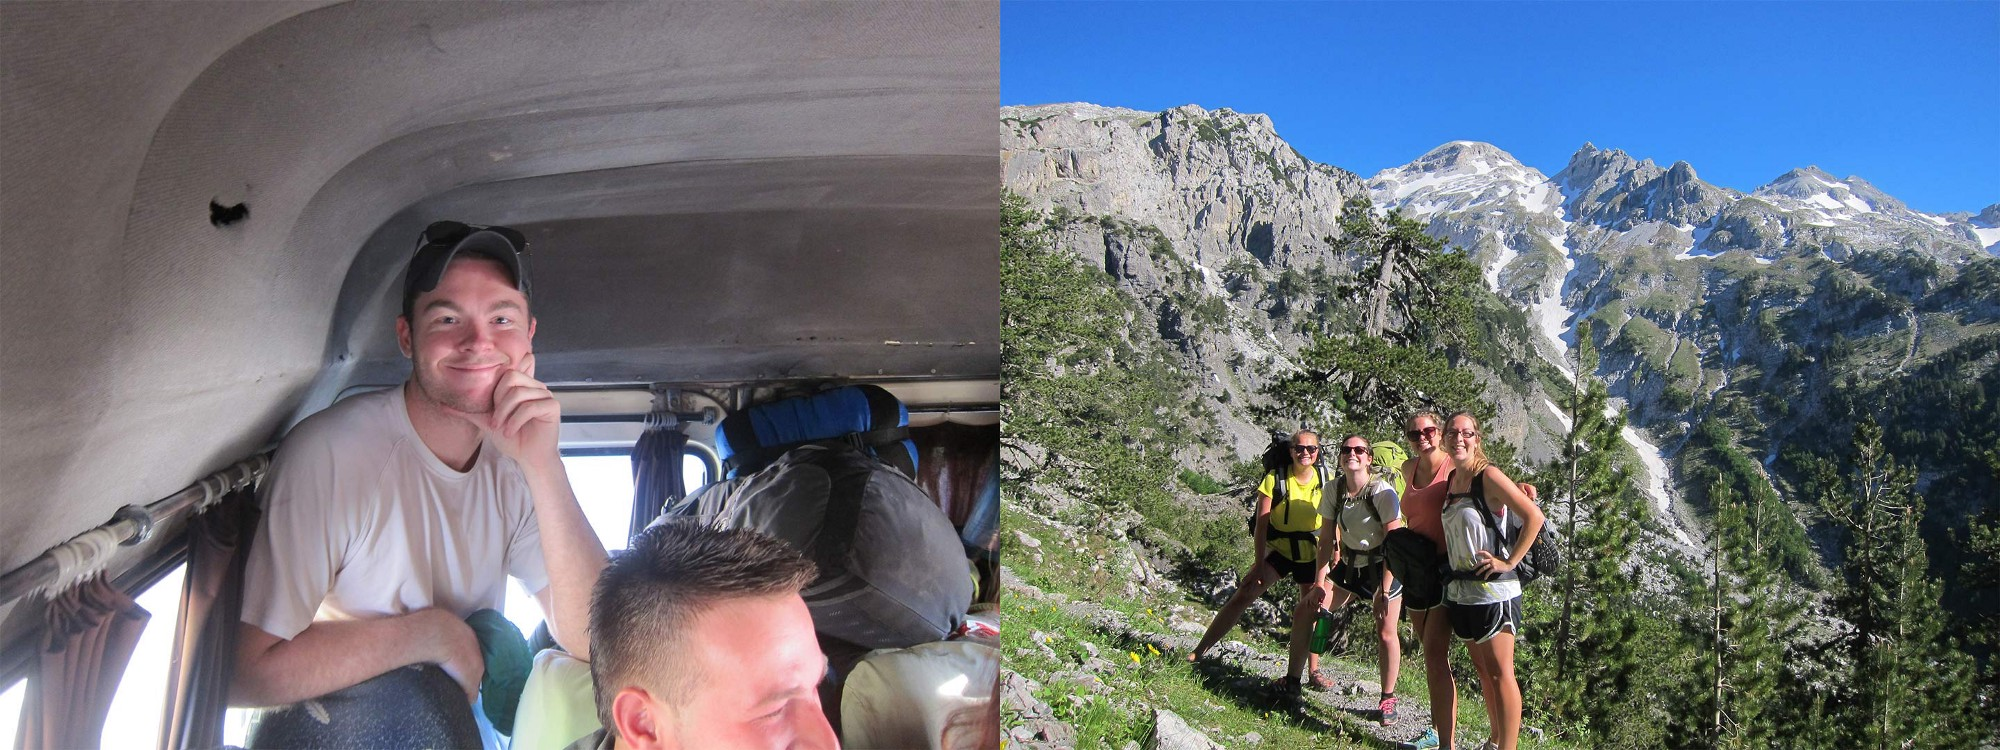 Image on the left shows a man standing in the trunk of a van, the second image shows four girls hiking in the mountains.